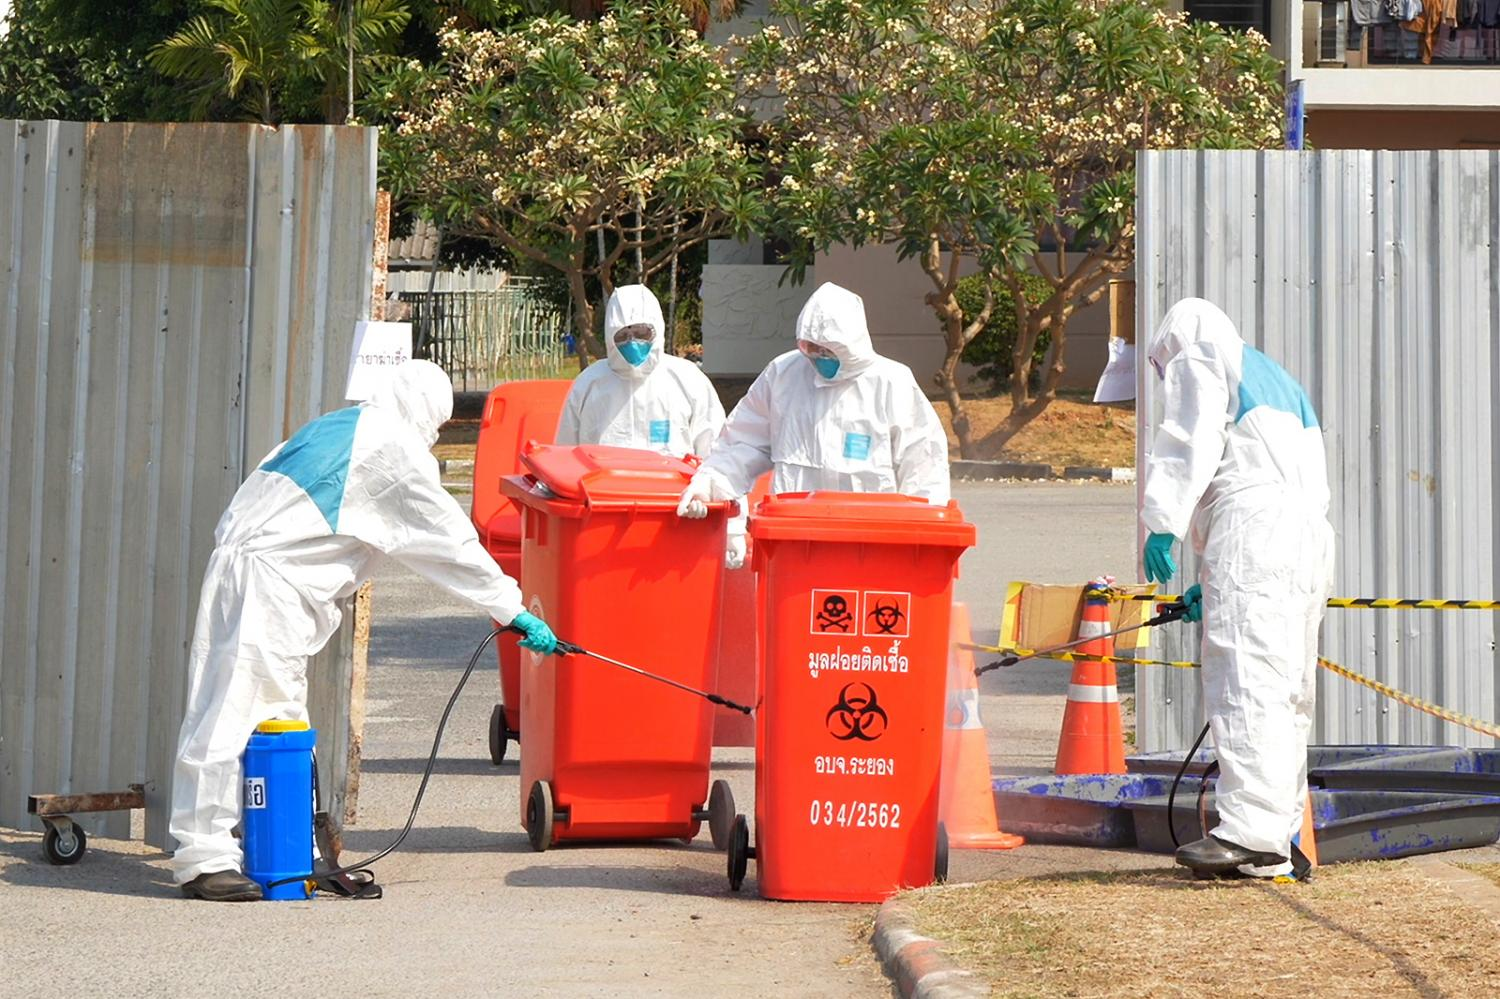 Infectious waste fees to be tackled